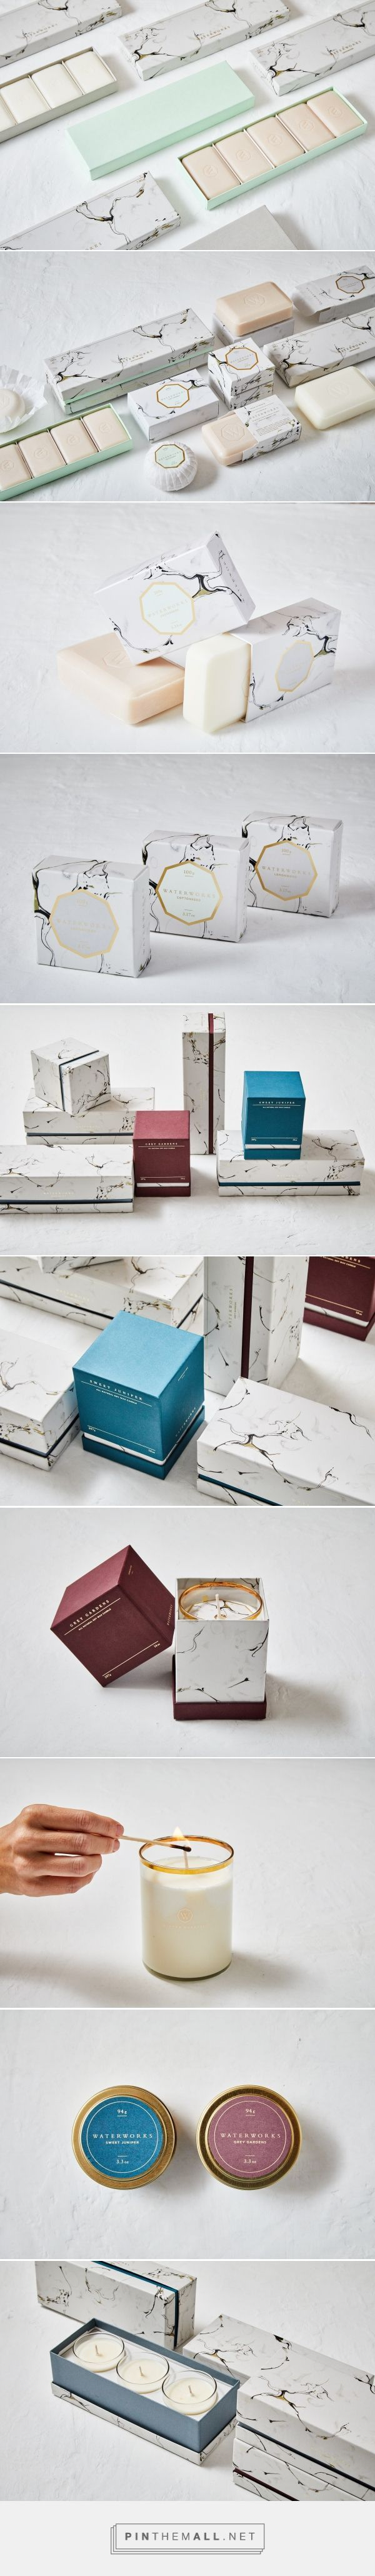 Waterworks Apothecary Bath Packaging by Stitch Design Co. | Fivestar Branding Agency – Design and Branding Agency & Curated Inspiration Gallery: